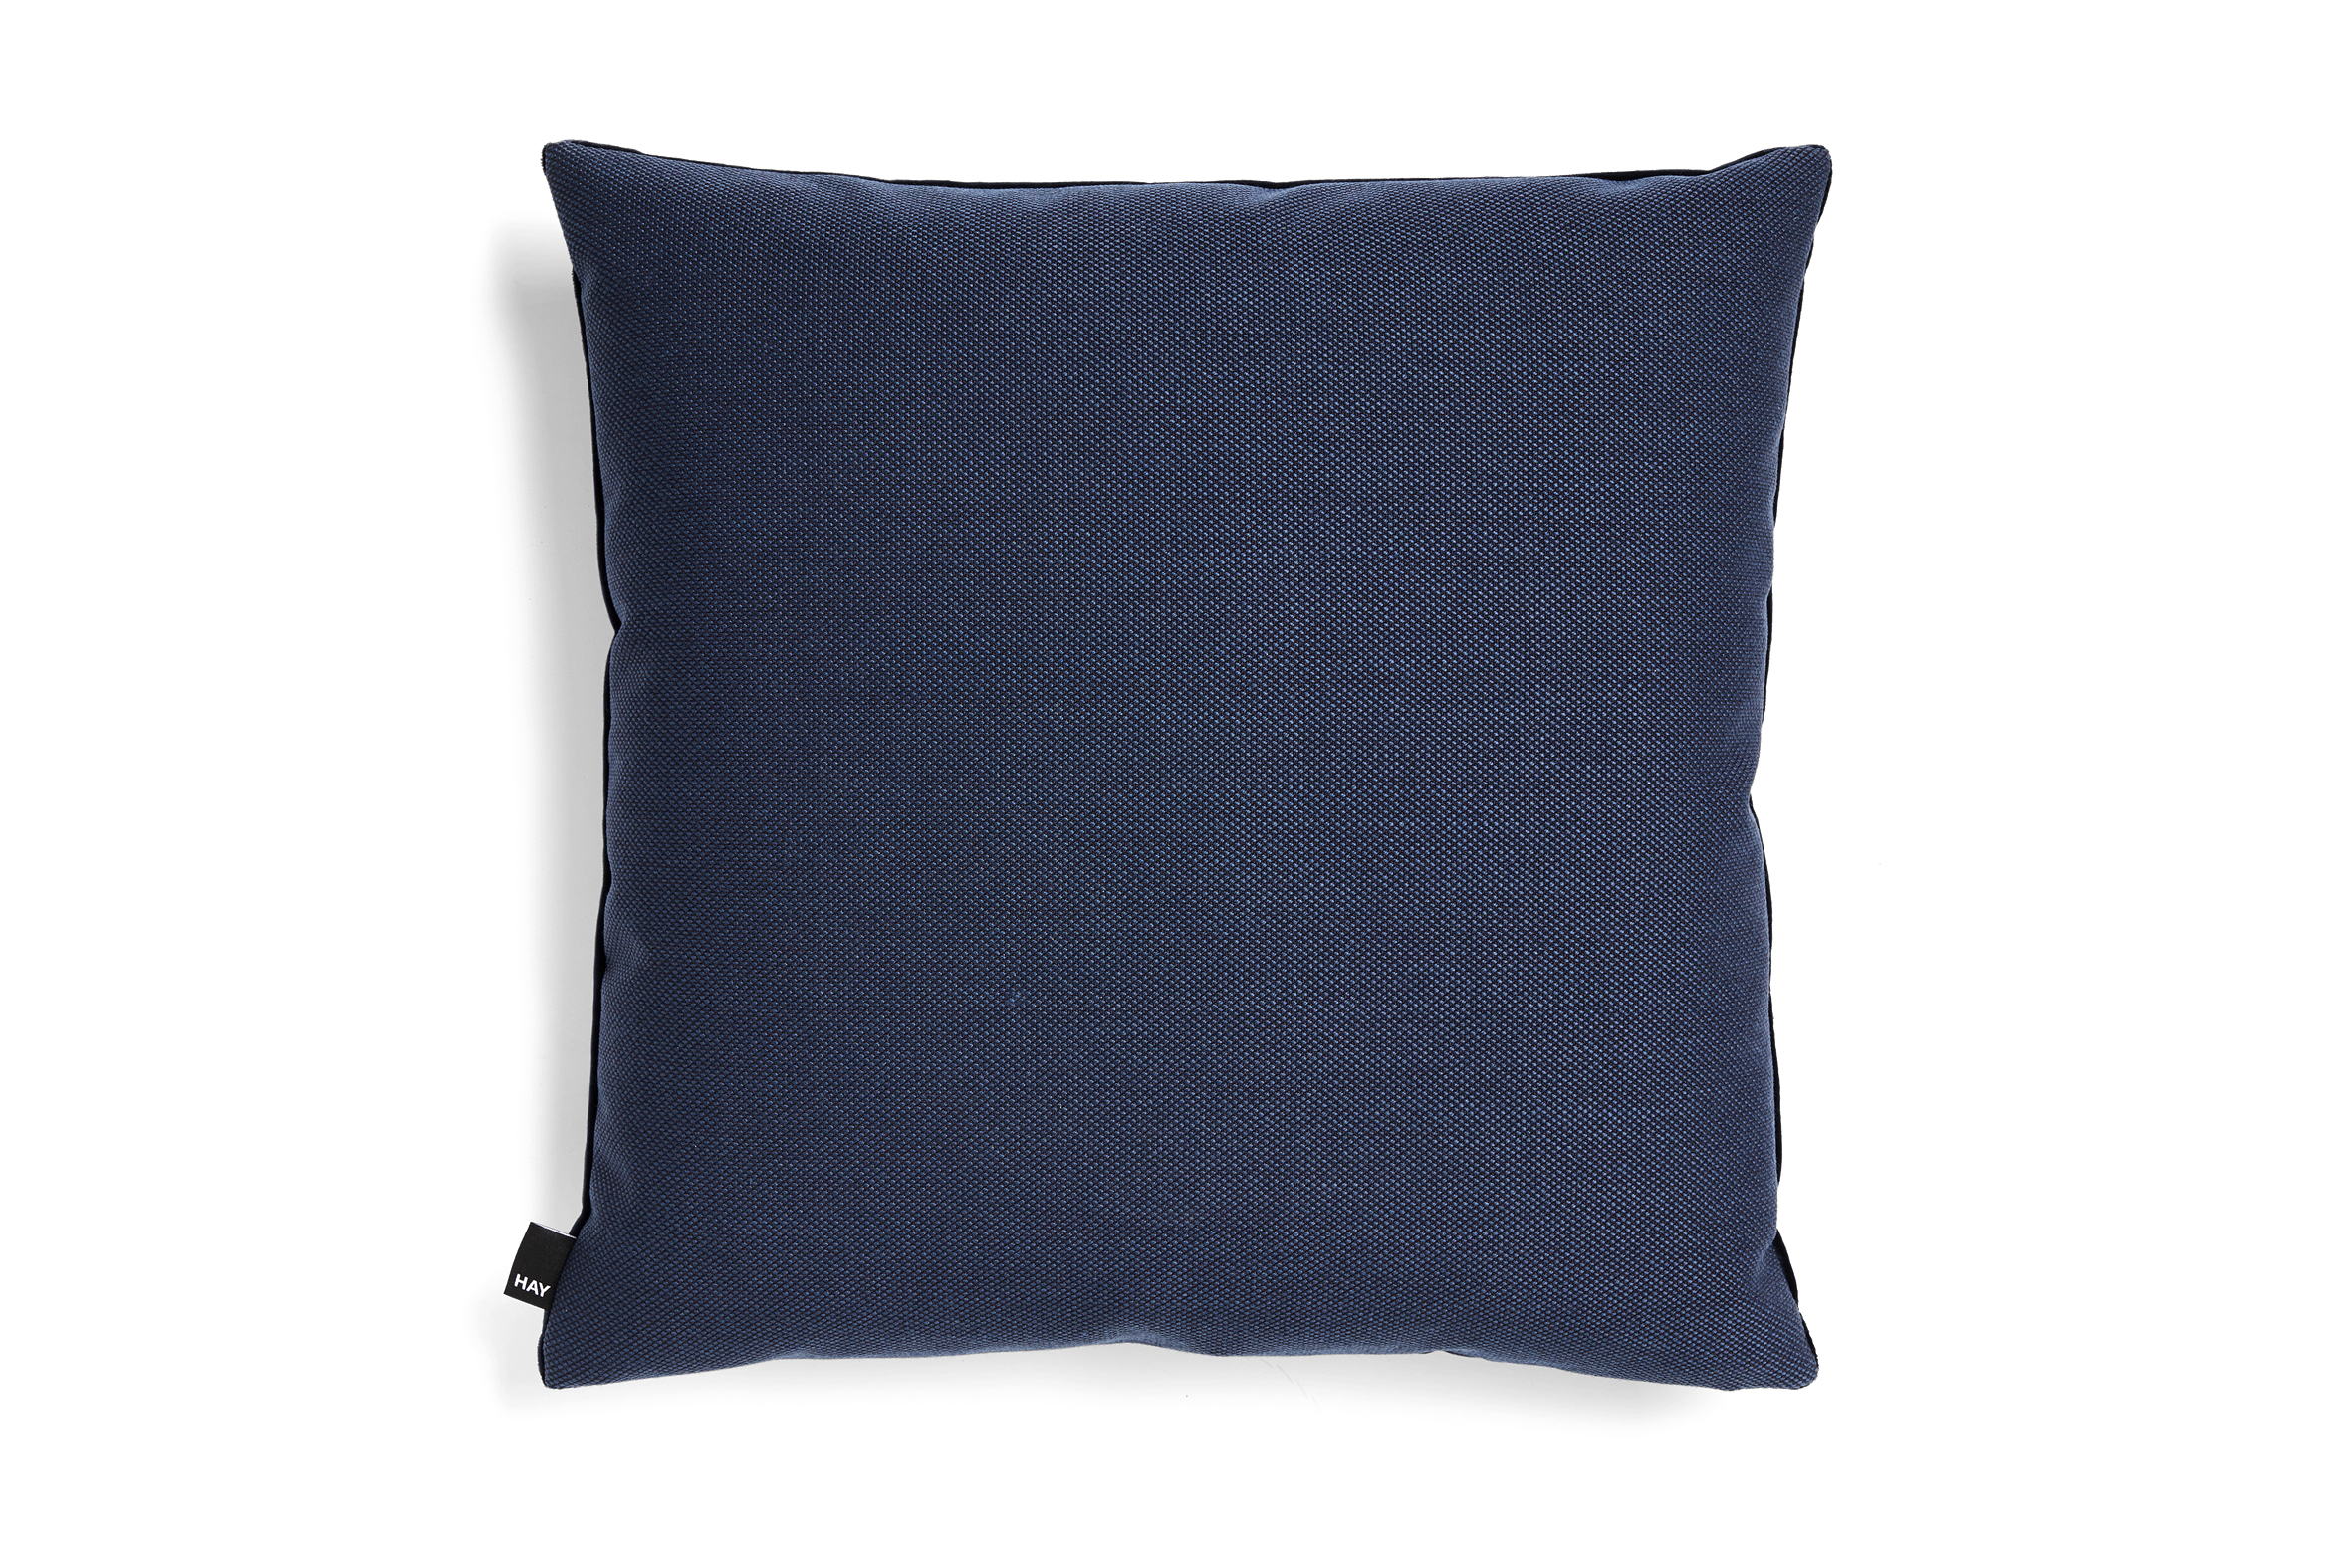 Eclectic cushion 50x50 soft navy